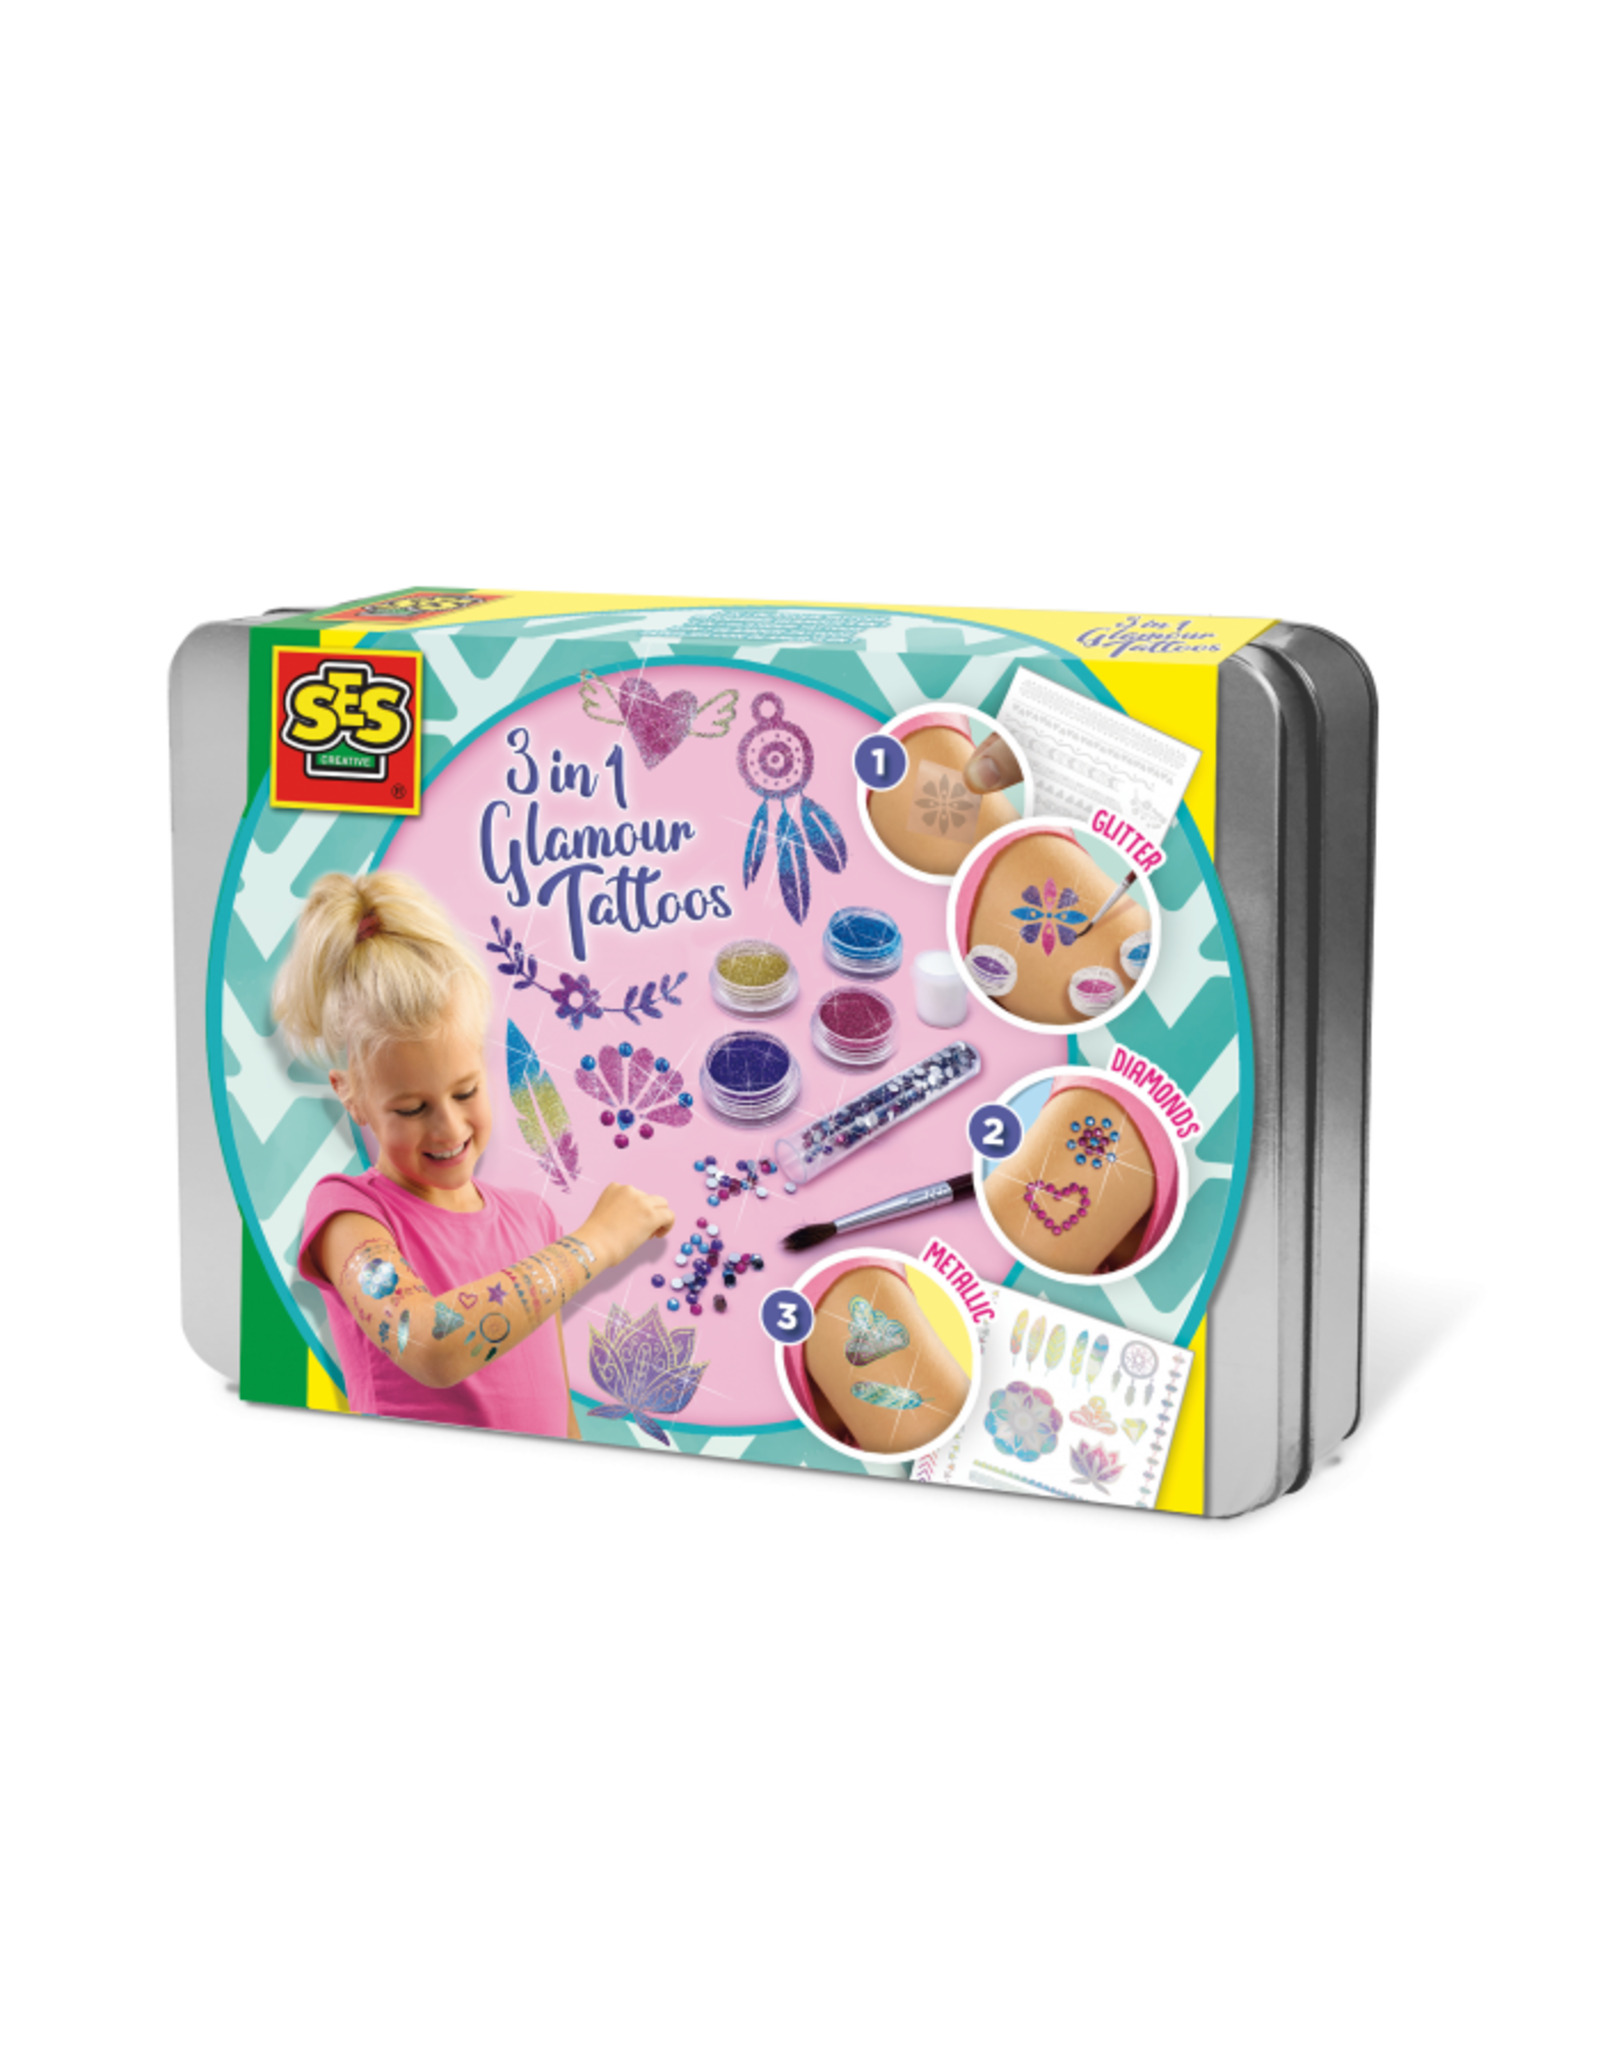 SES Creative 3 in 1 Glamour tattoos